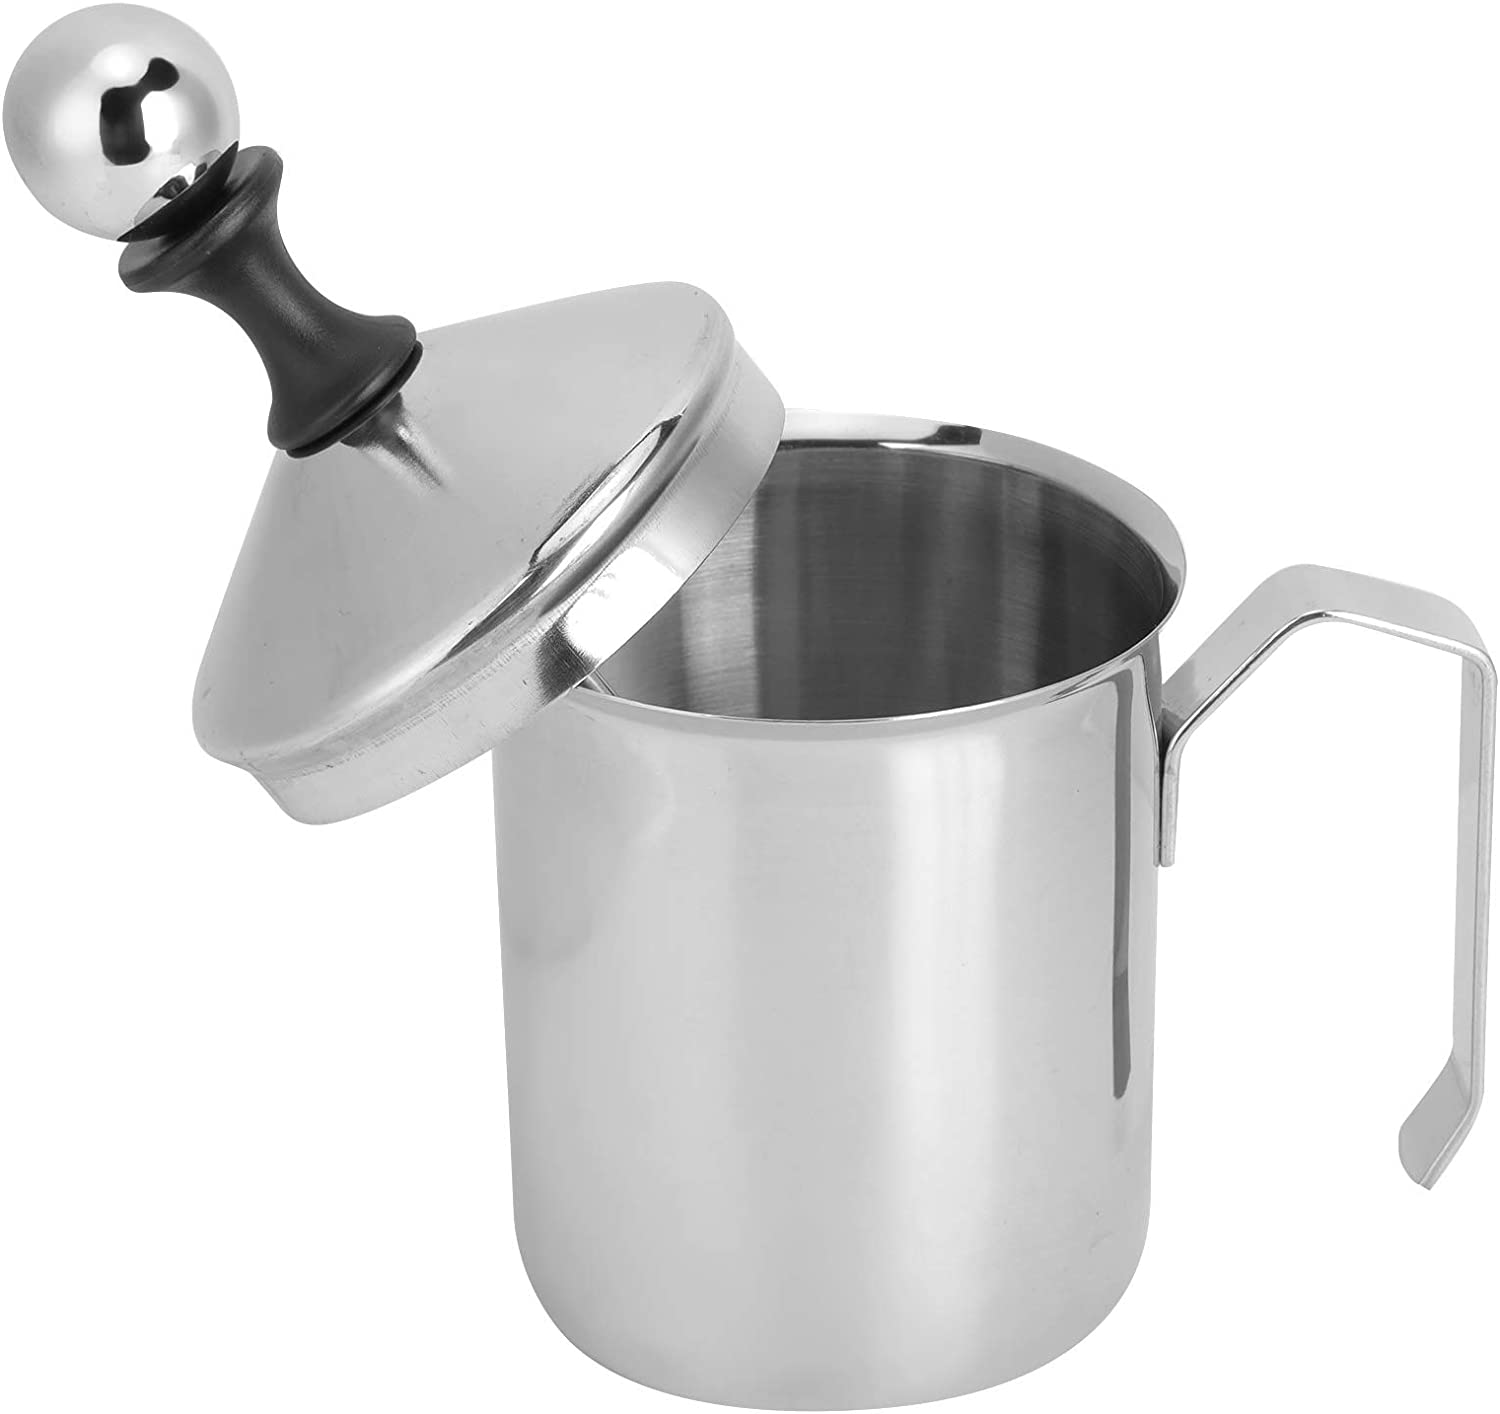 Super beauty product restock quality top! Manual Denver Mall Drink Mixer 304 Stainless Steel Frother 400cc Milk